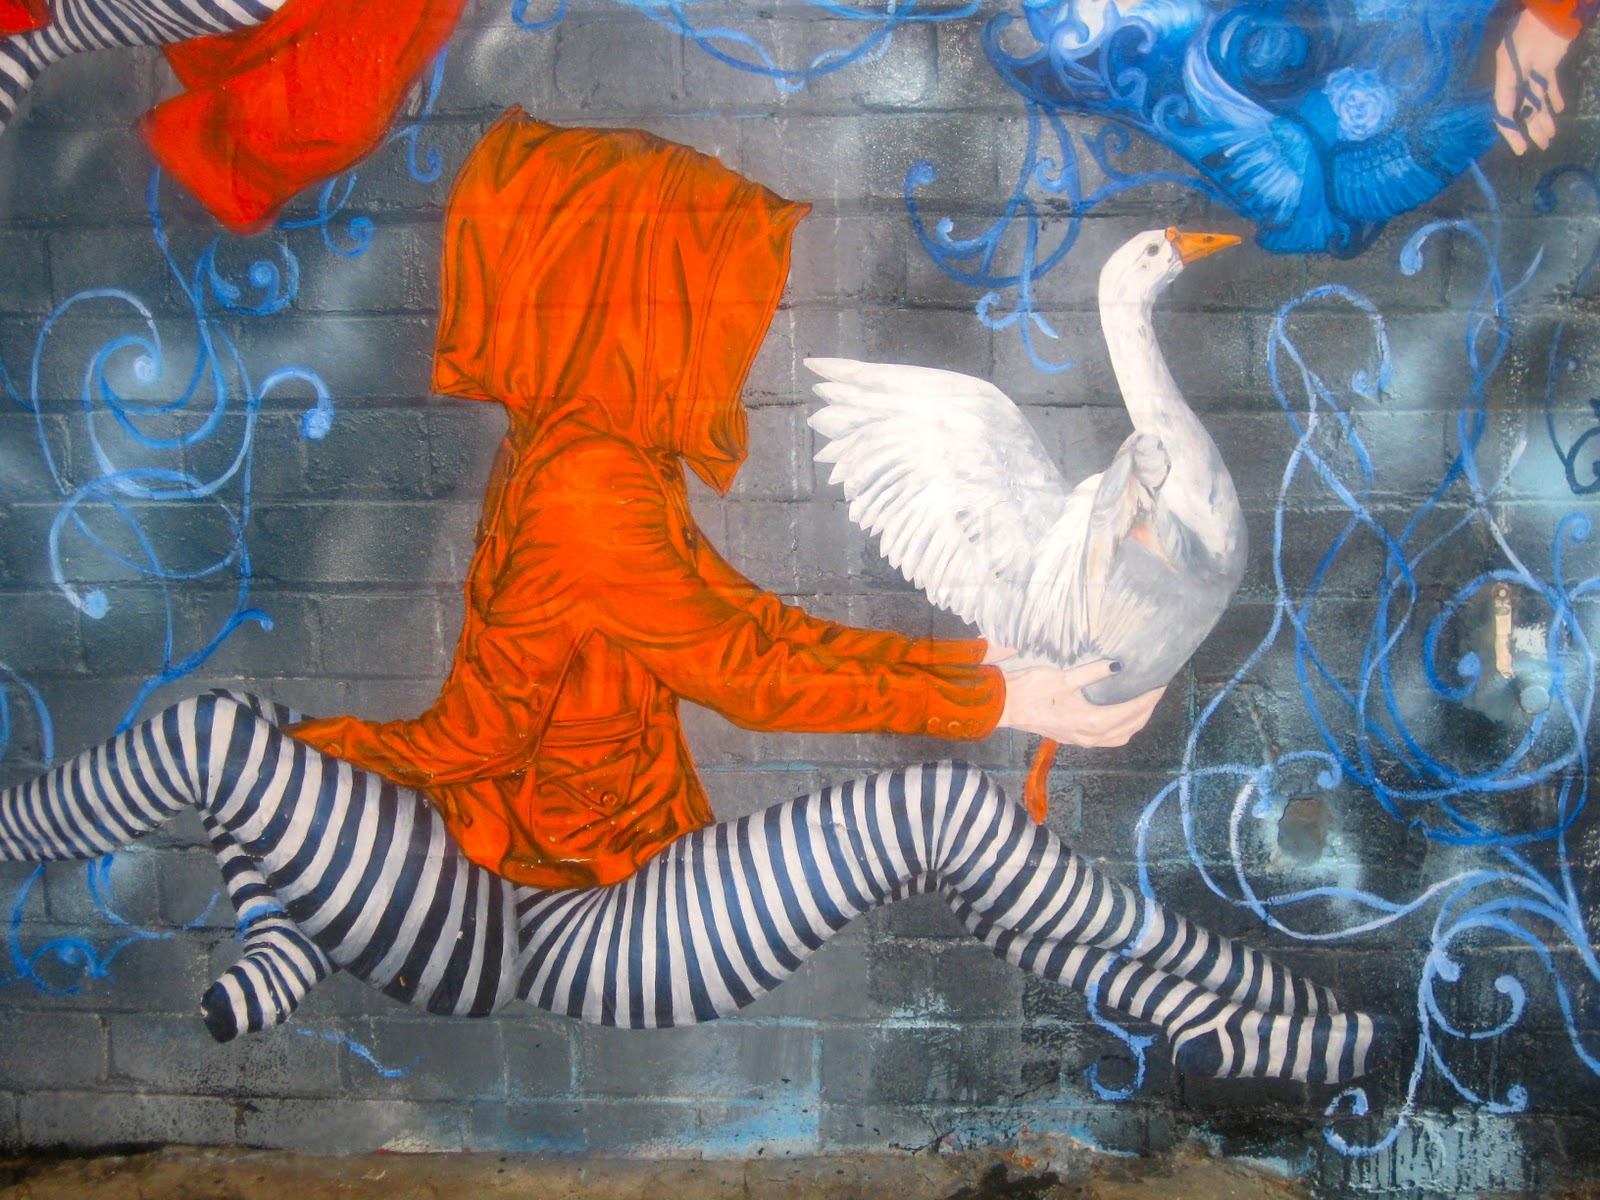 Tune into Radio Carly: Melbourne street art exploration ...